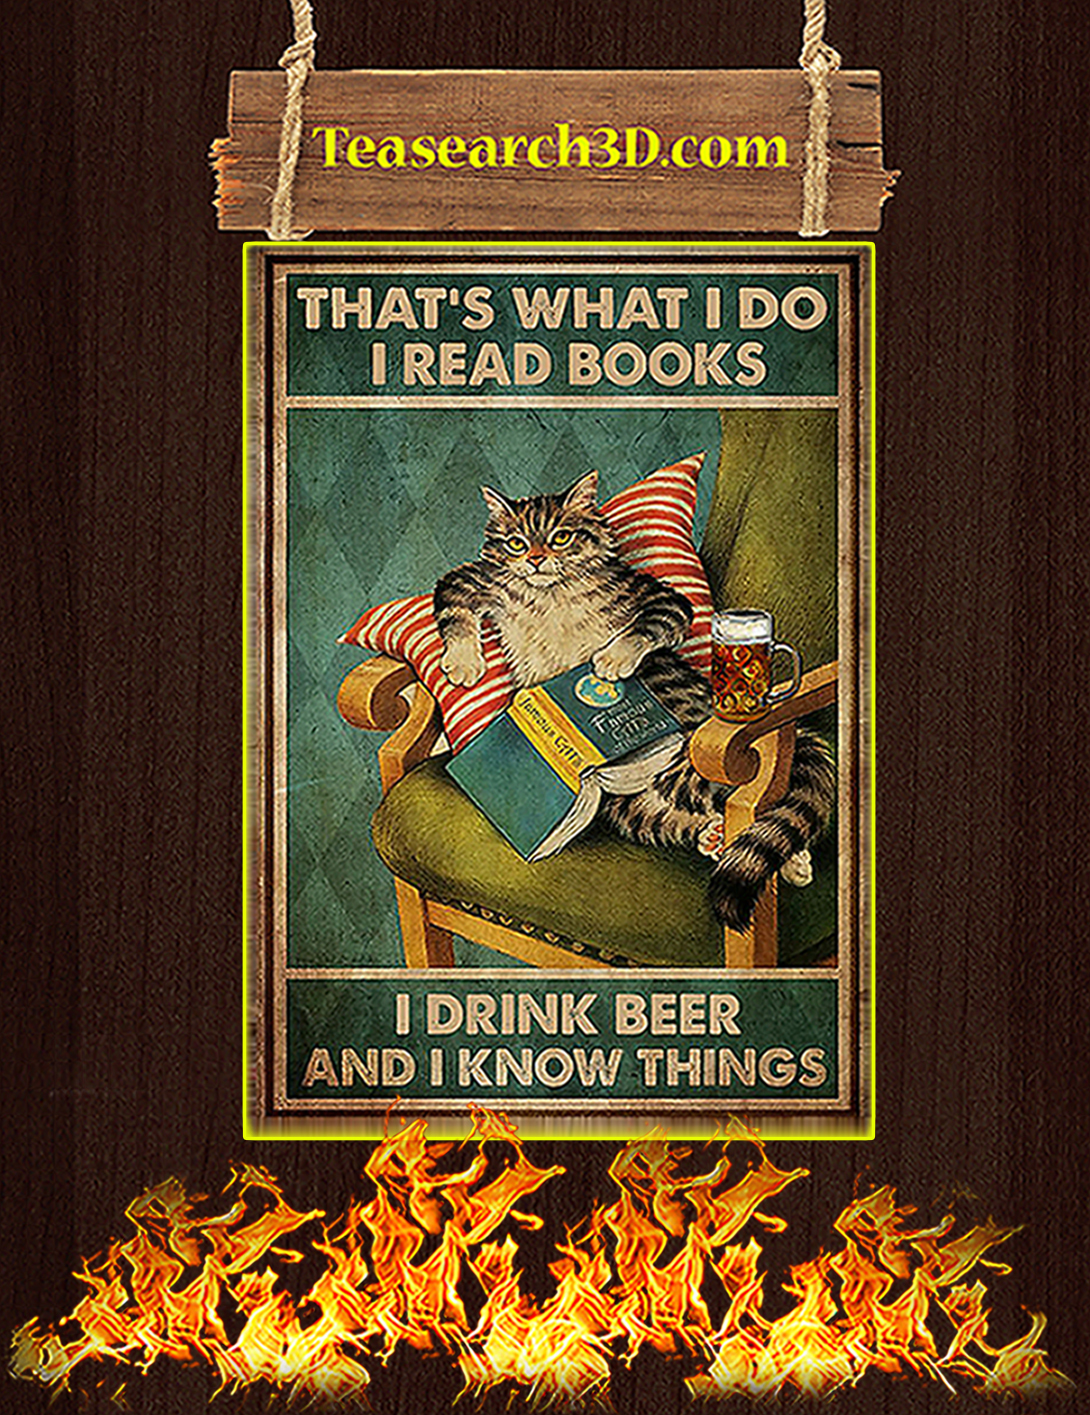 Cat that's what I do I read books I drink beer and I know things poster A2